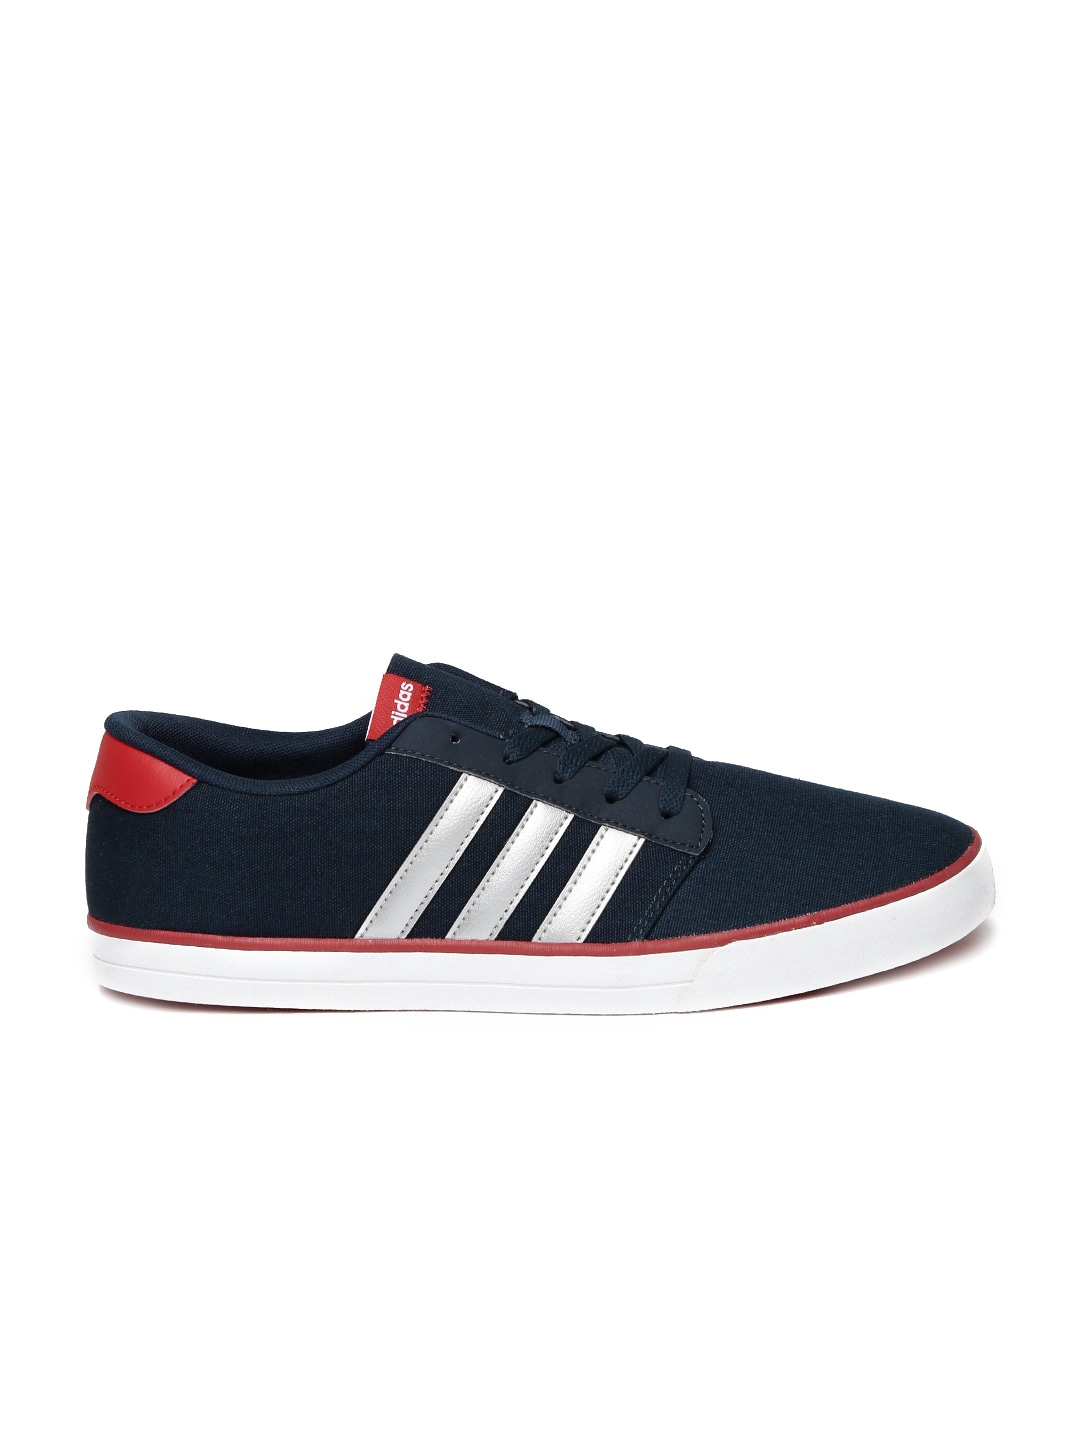 new product 63ec2 5b2cd adidas neo mesh gold red